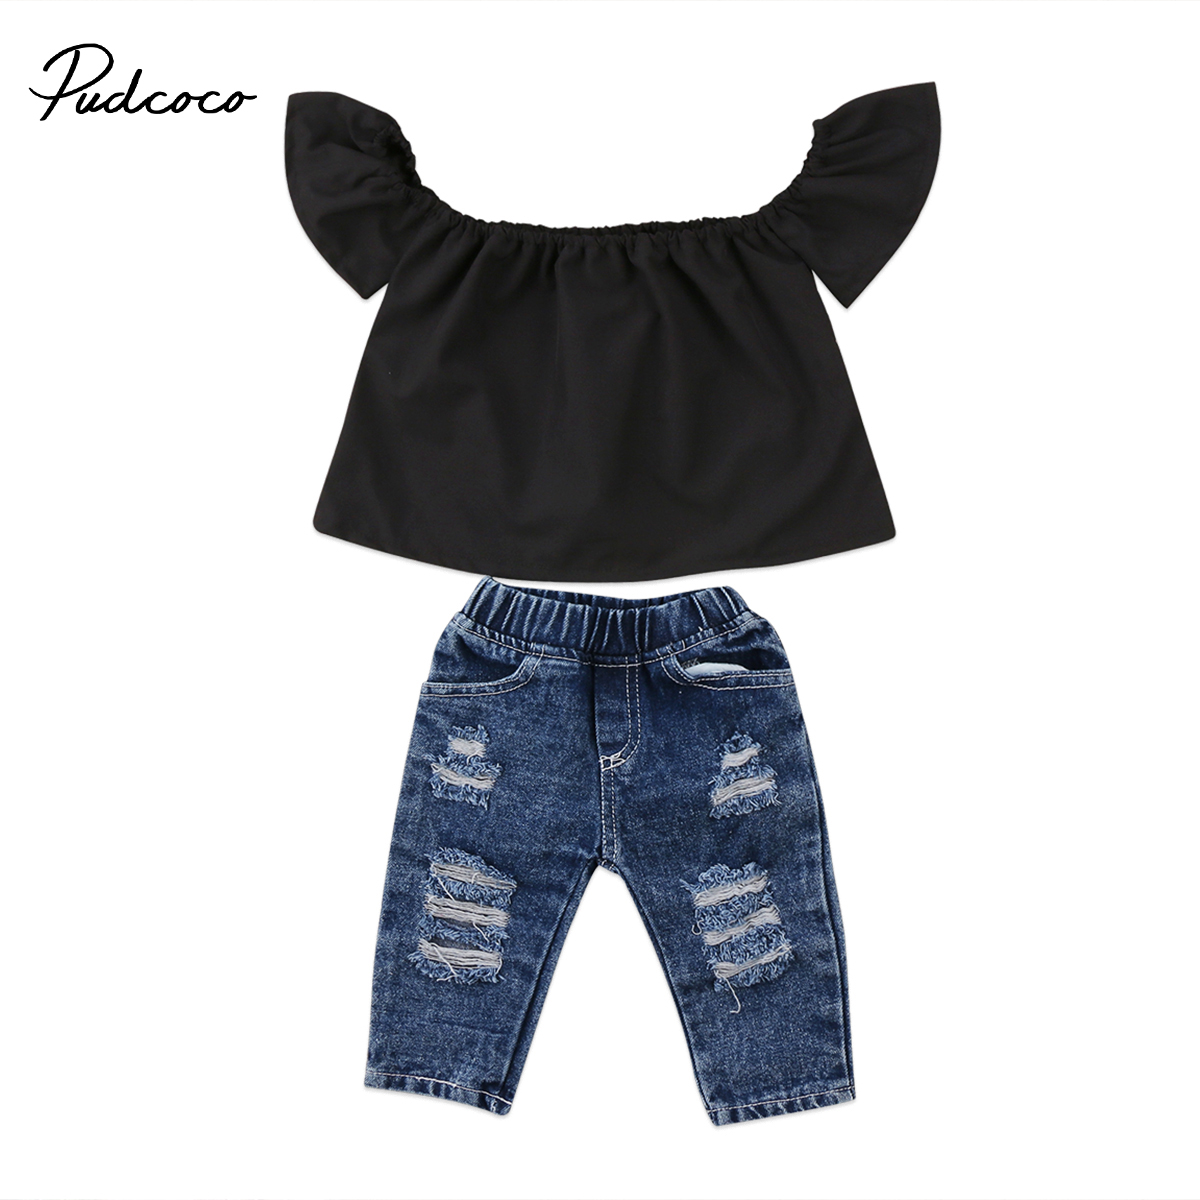 Toddler Baby Kids Girls Denim Ruffle Clothing Set Off Shoulder Tops Denim Pants Outfits Set Clothes toddler baby kids girls clothes sets summer lace tops t shirt short sleeve denim jeans pants cute outfits clothing set